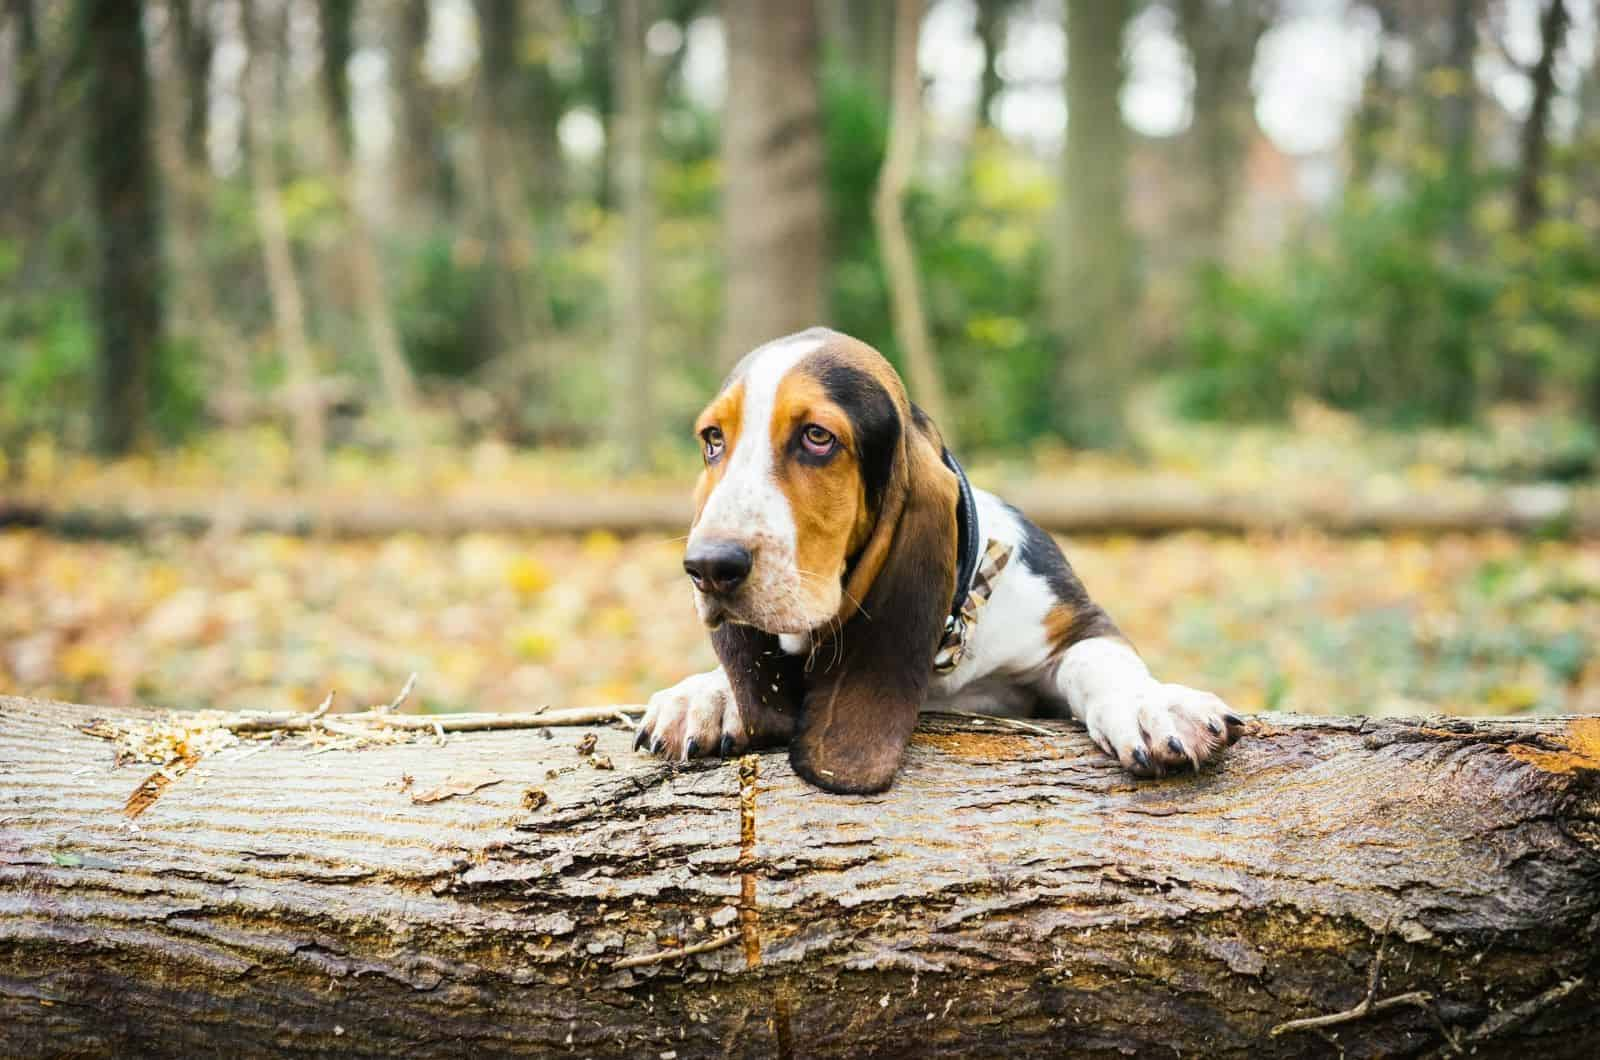 basset hound leaning on a log